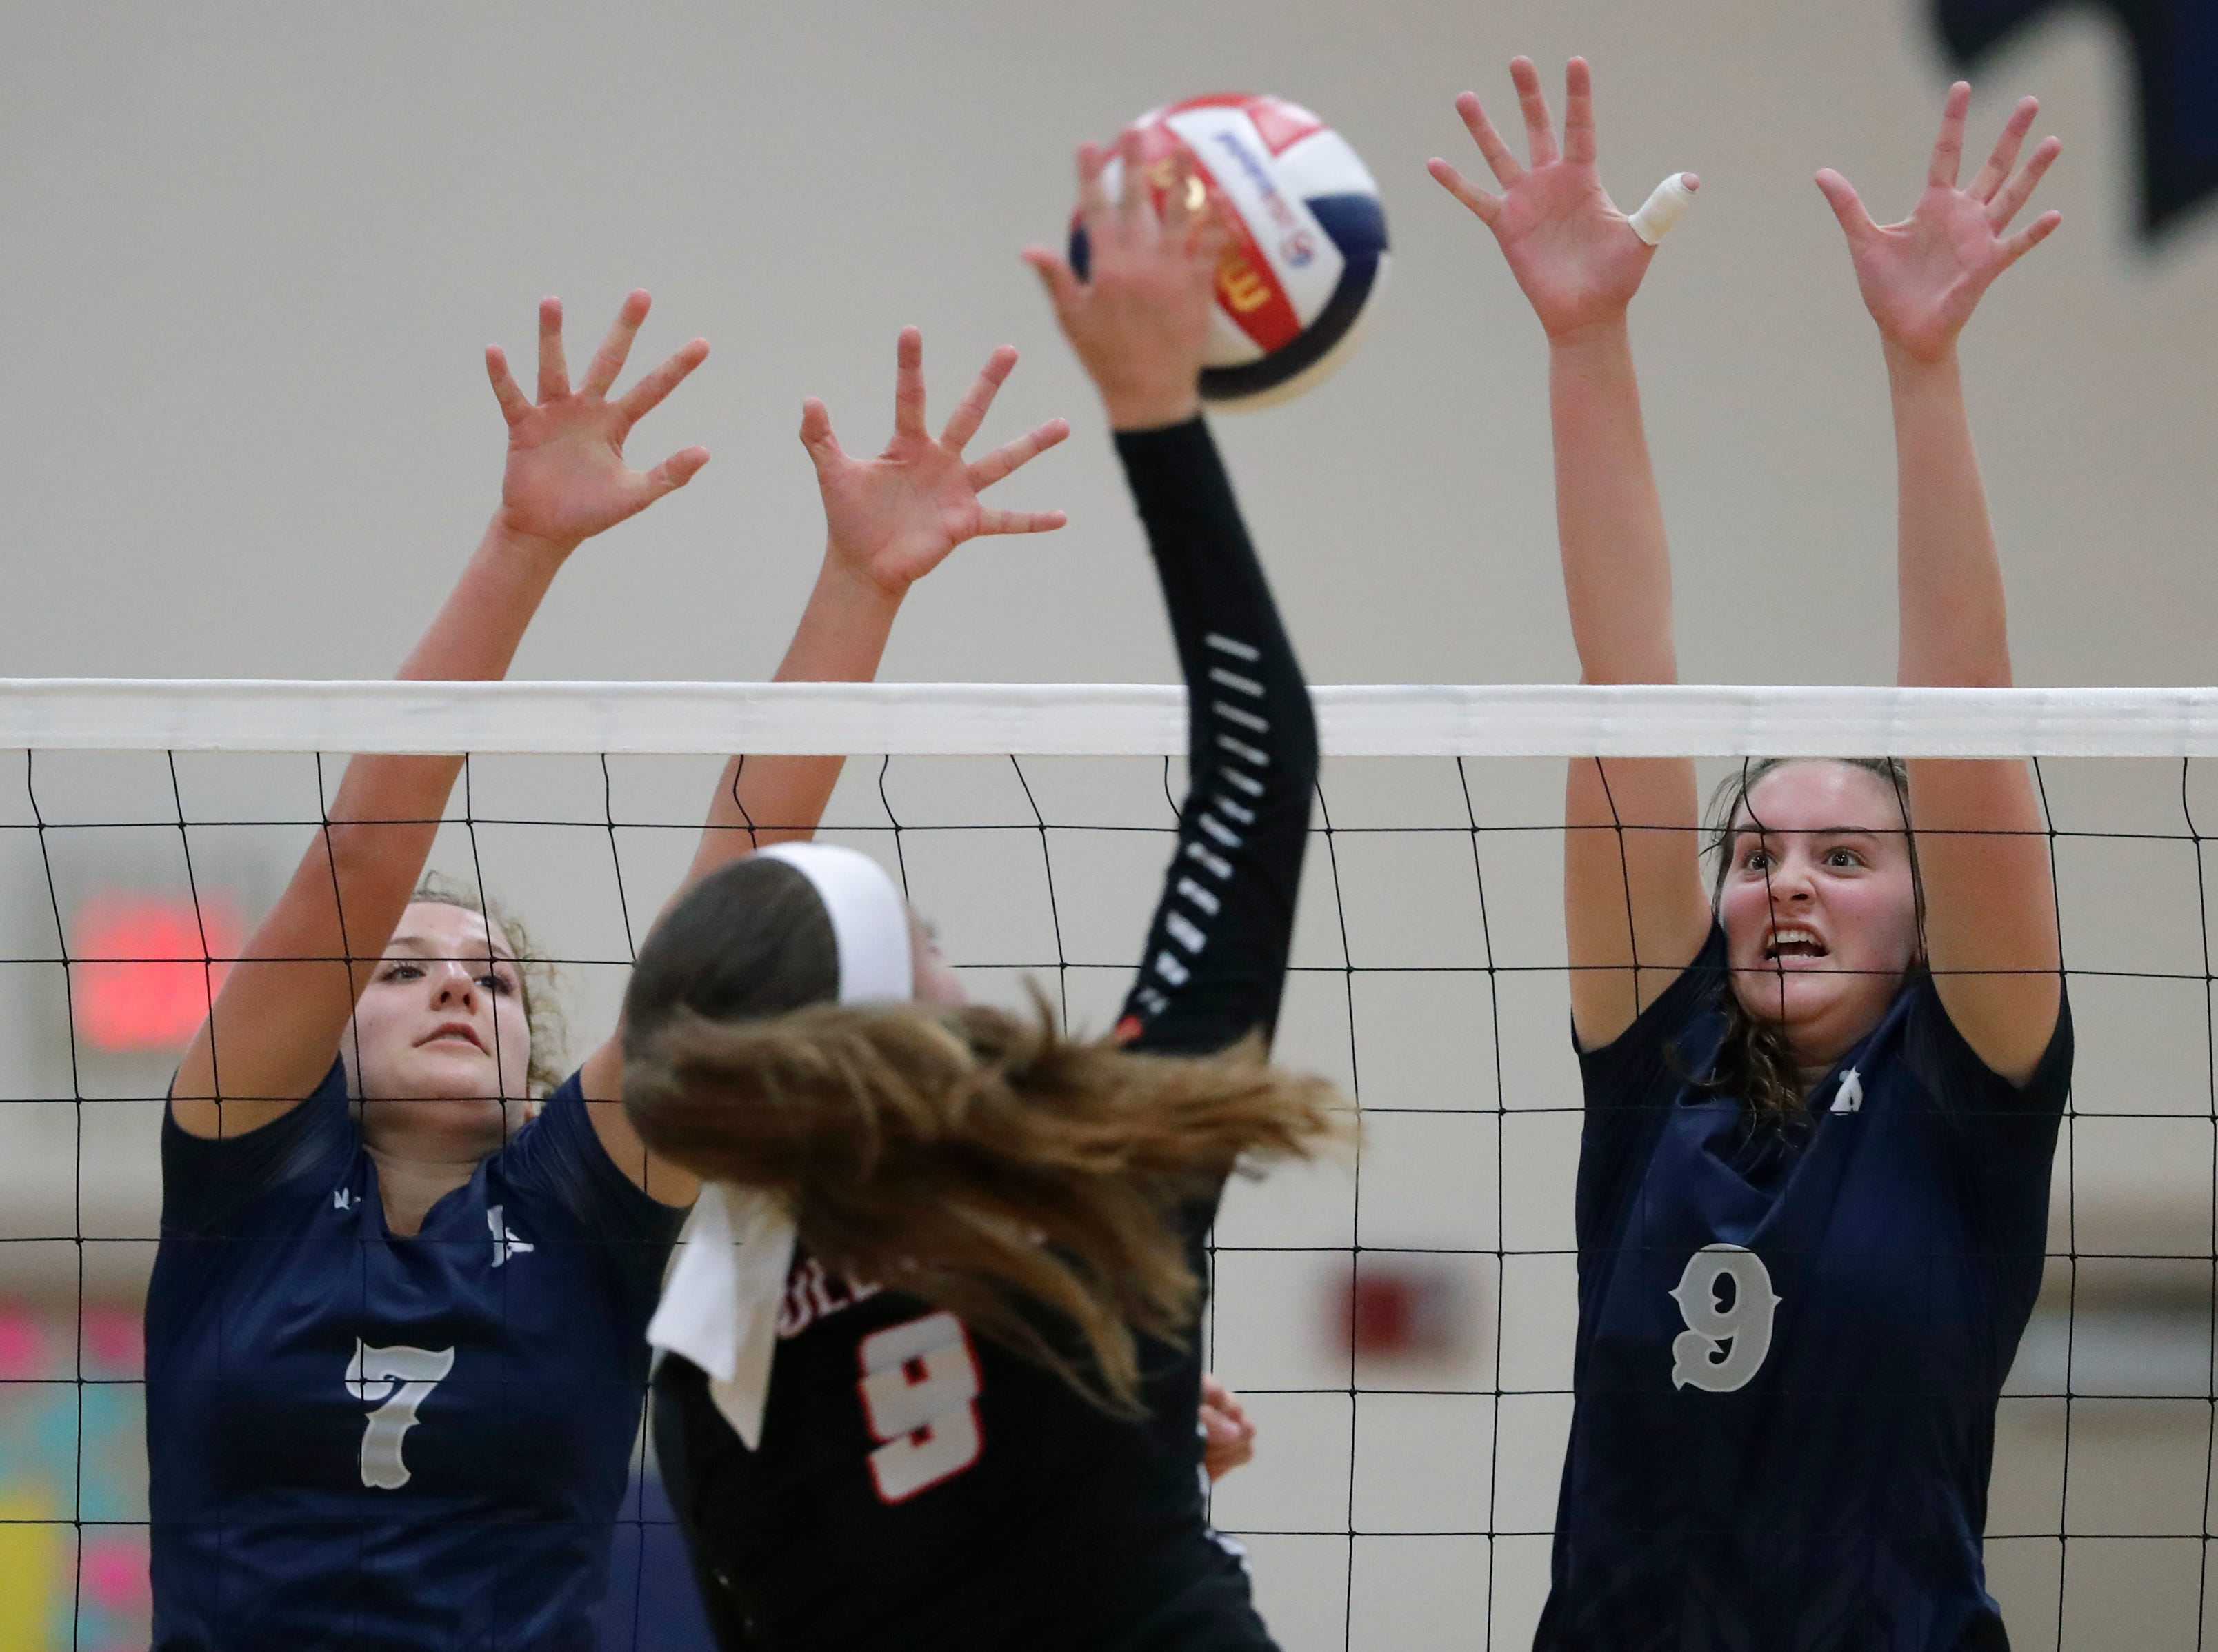 Xavier High School's Anna Hoerning (7) and Gabby Murray (9) block against New London High School's Mackenzie Fischer (9) during their girls volleyball match Thursday, Sept. 13, 2018, in Appleton, Wis. 